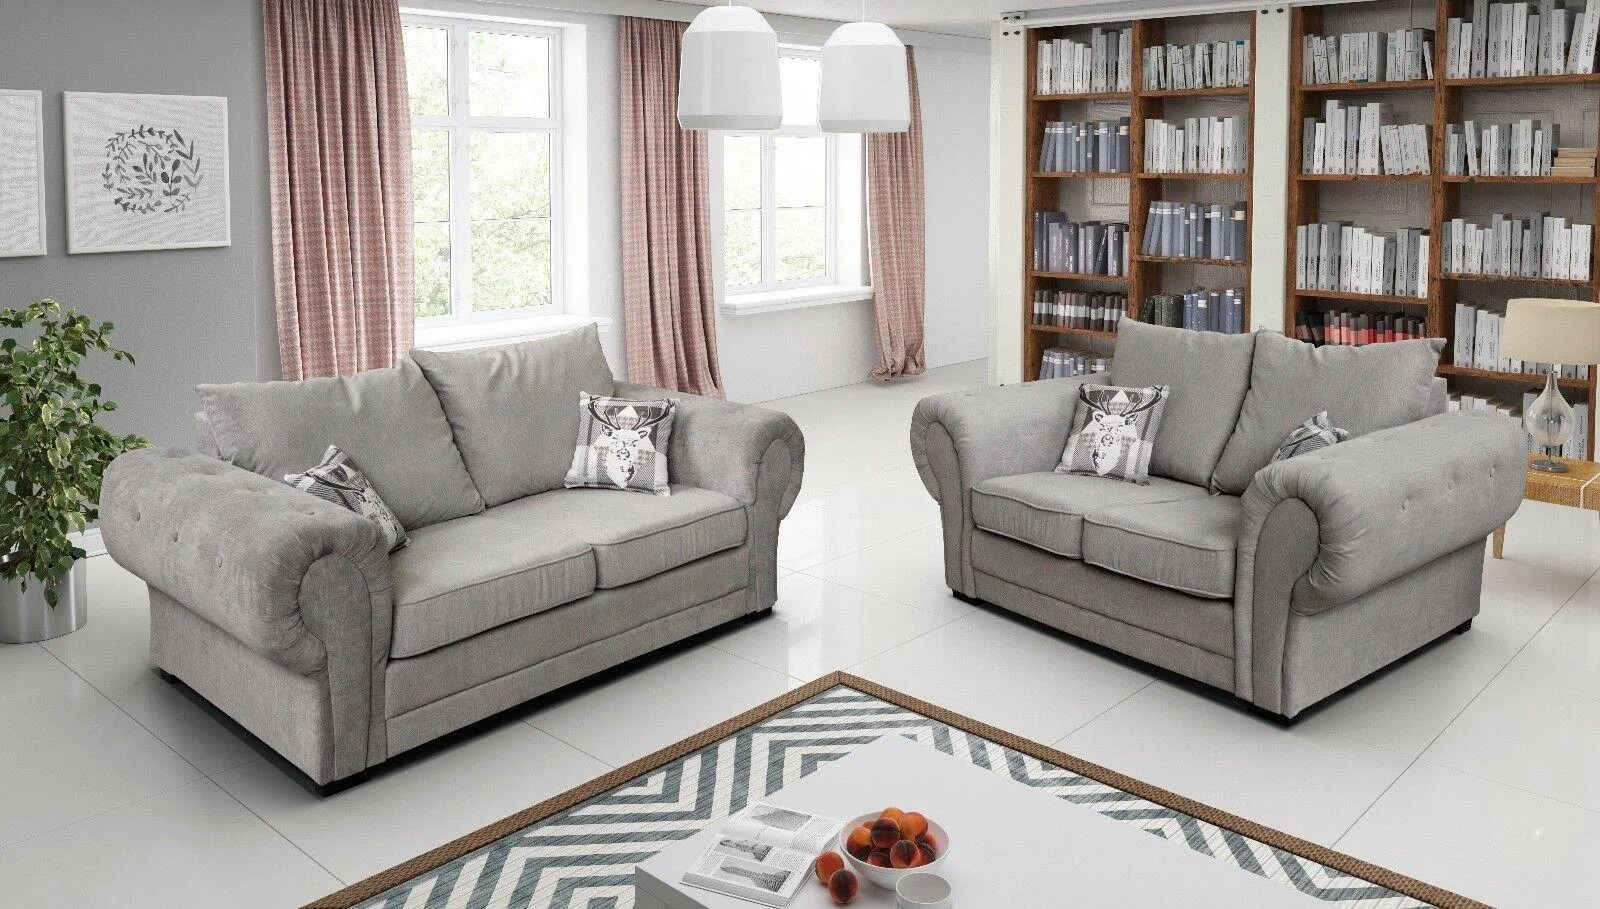 Baron Full Back Grey Or Silver Sofa Fabric Corner 3 2 1 Or Left Right